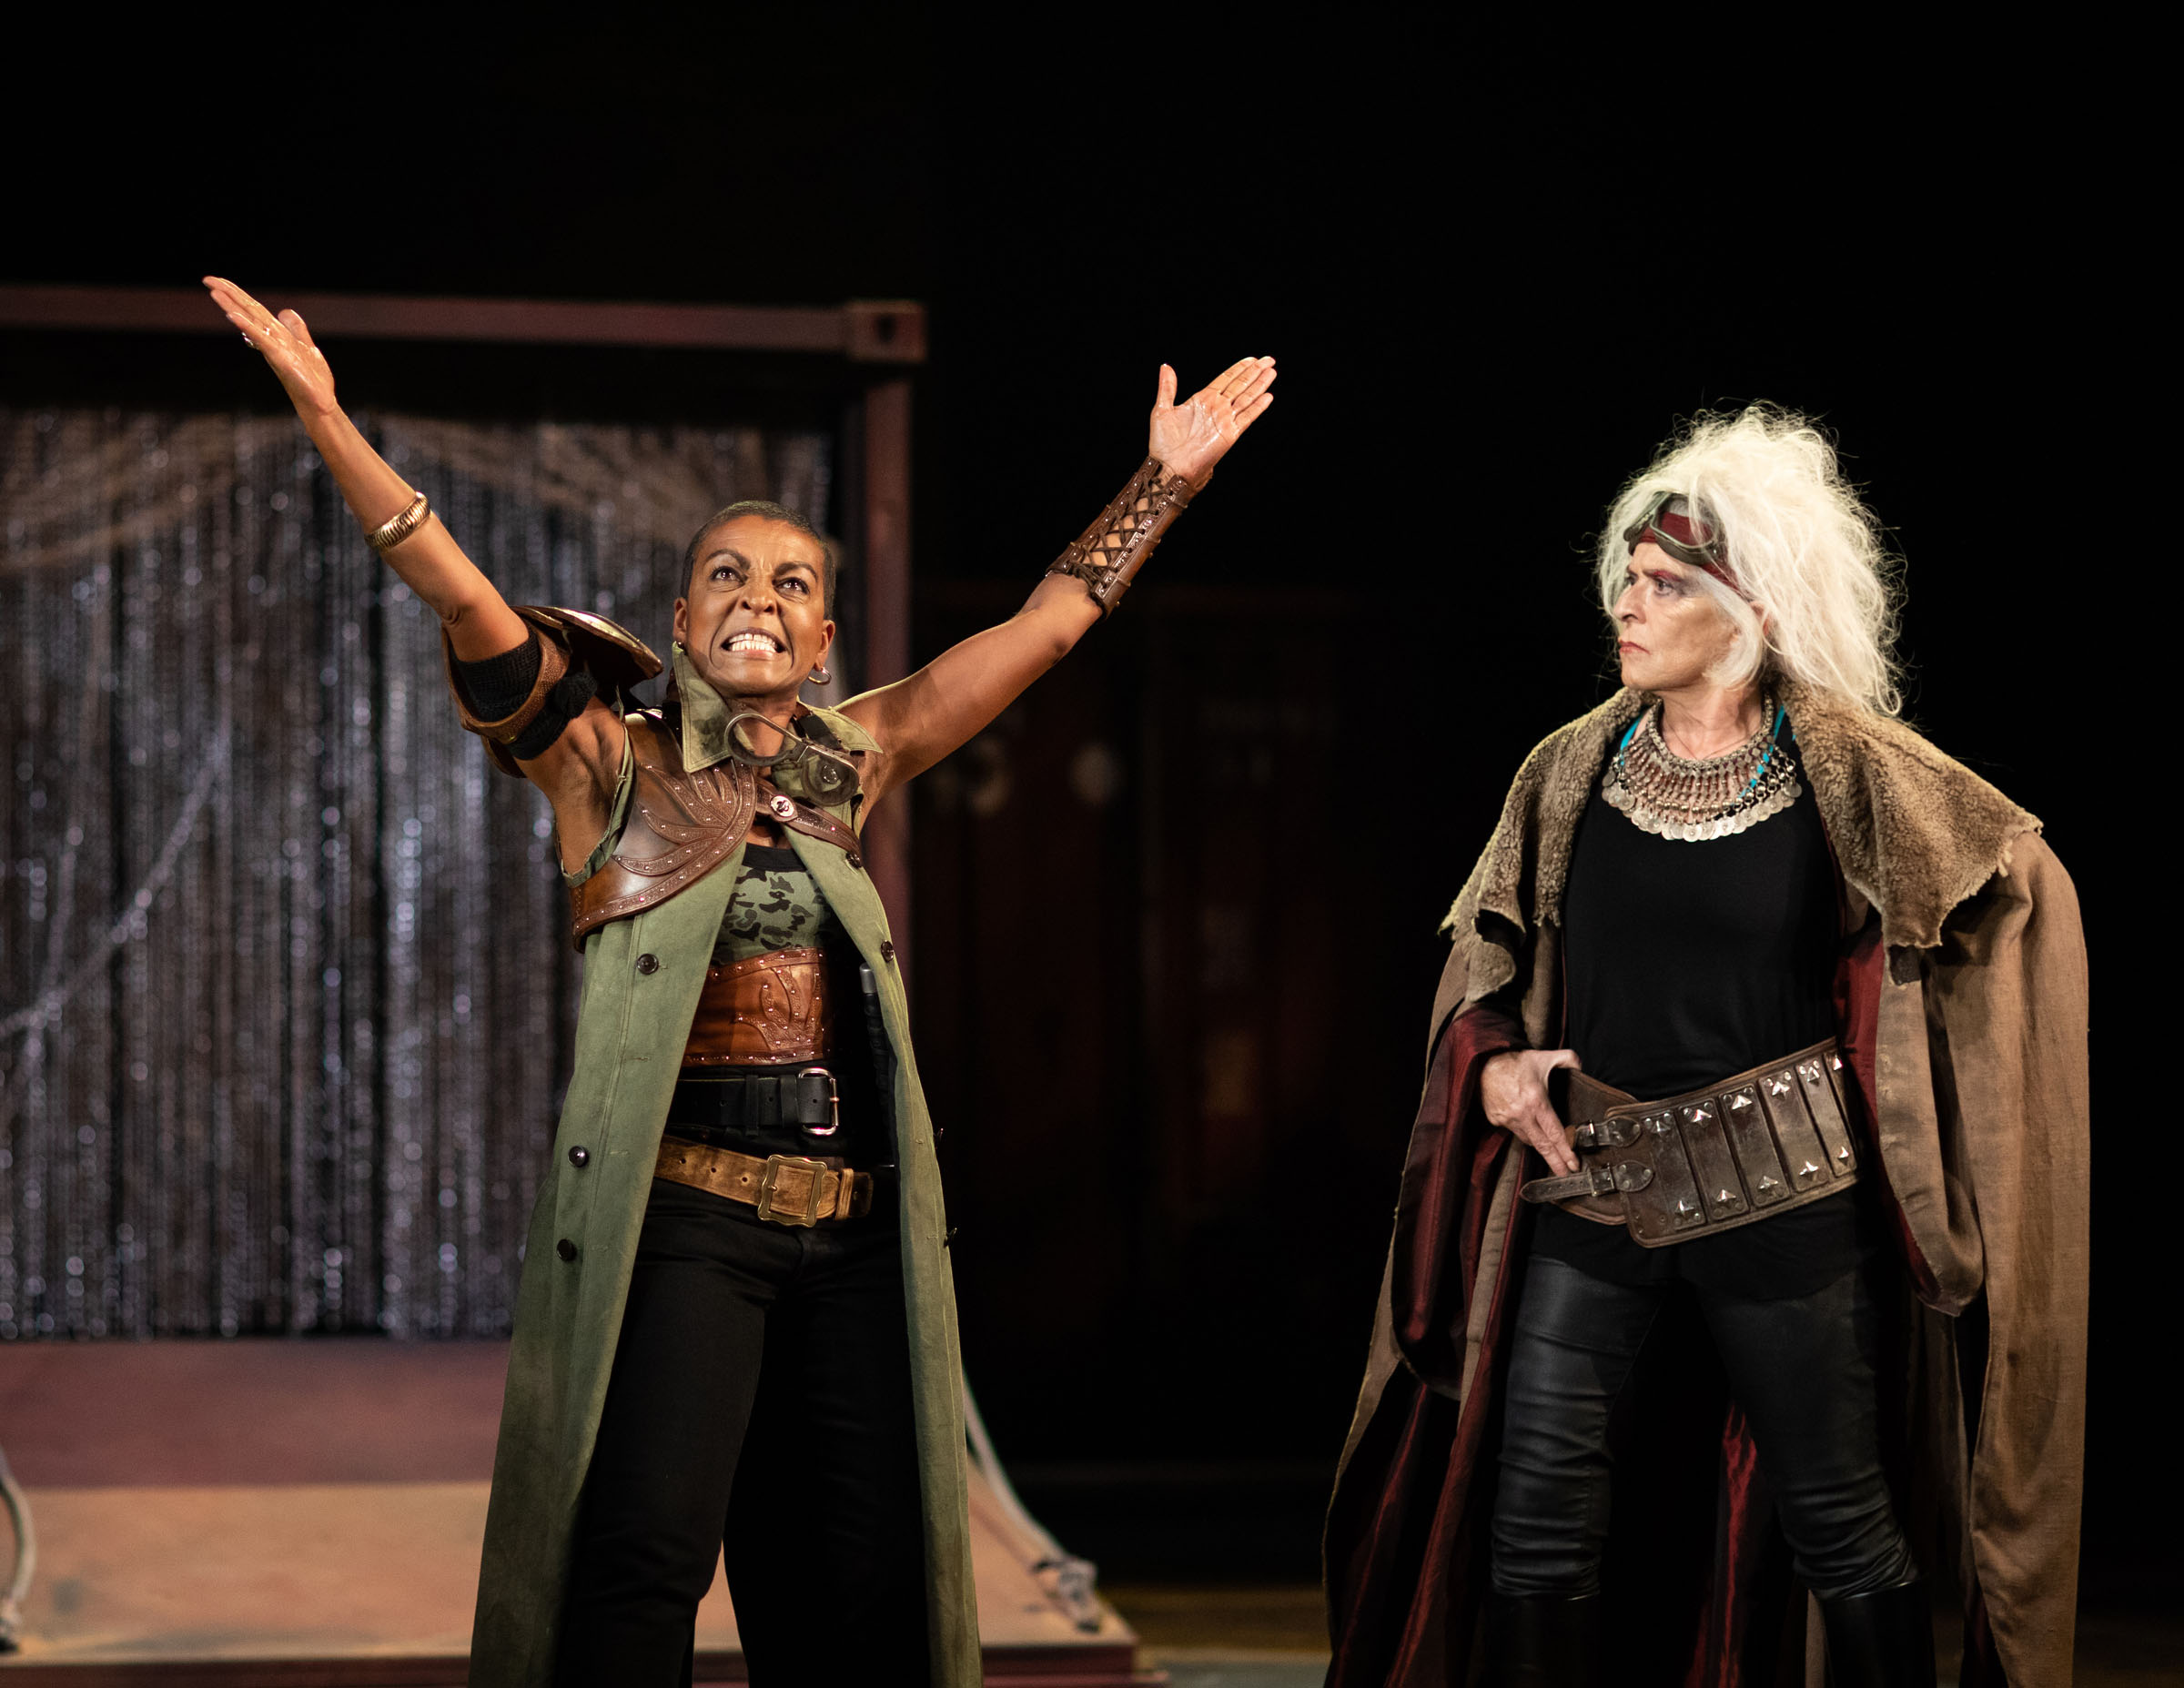 Adjoa Andoh as Ulysses and Suzanne Bertish as Agamemnon at the RSC